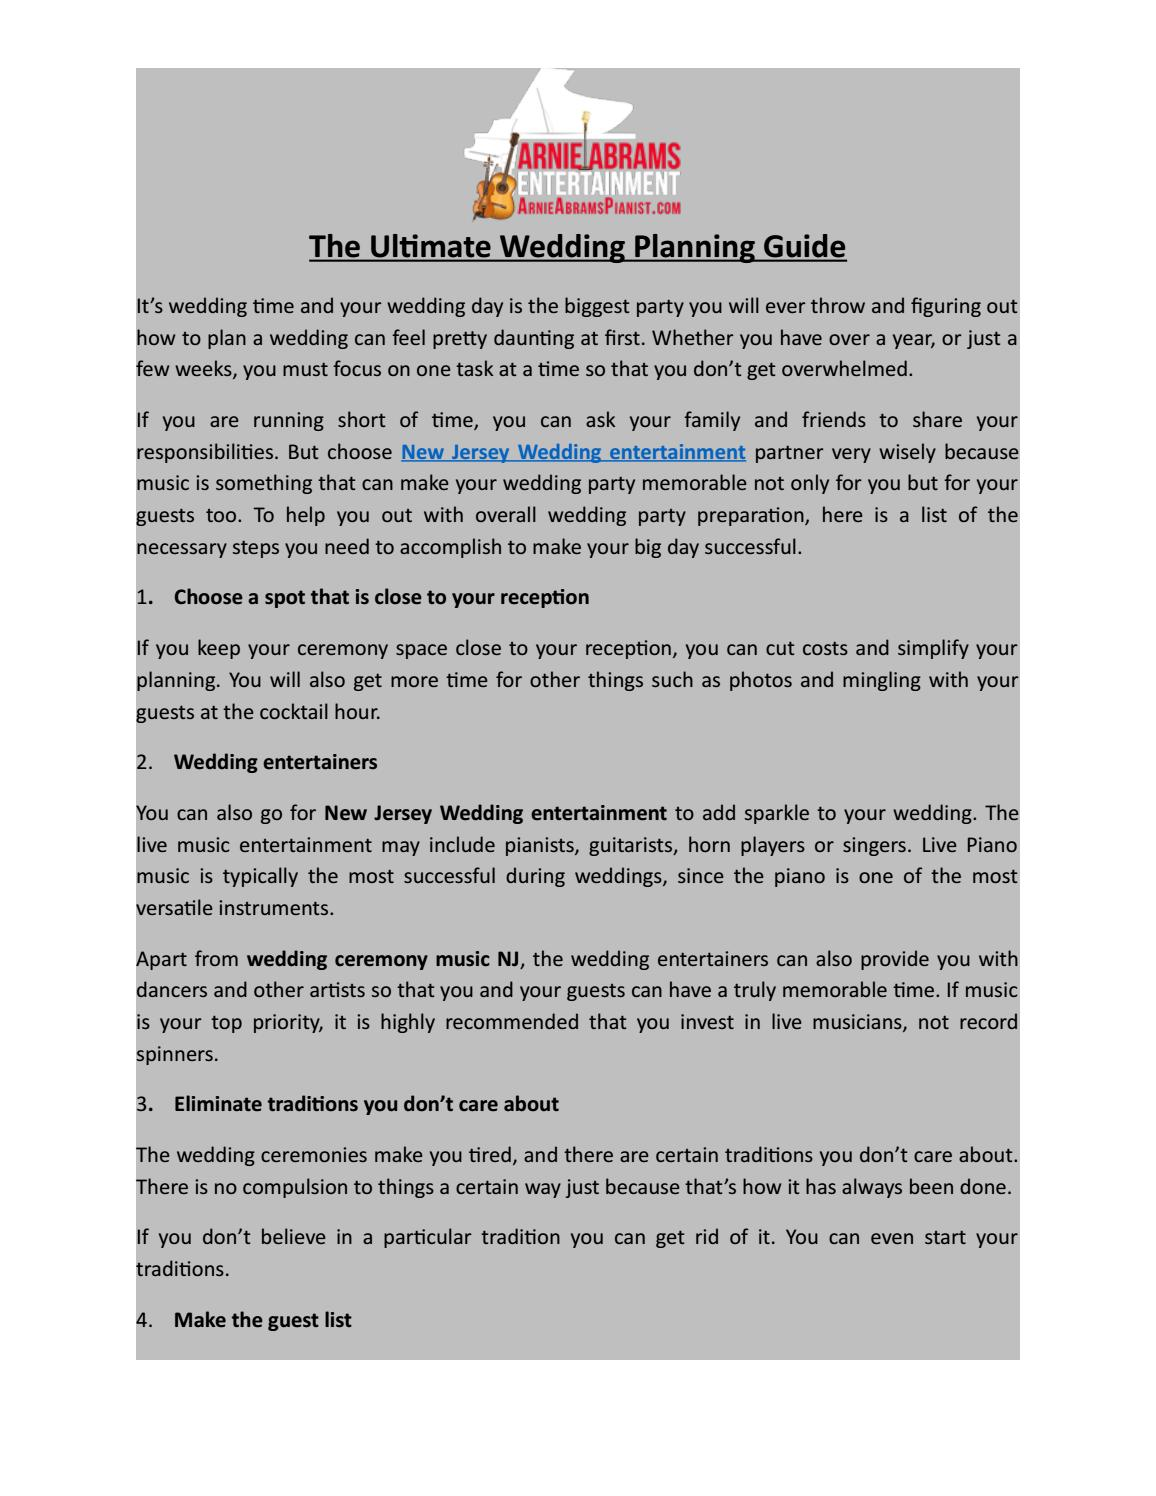 The Ultimate Wedding Planning Guide By Abramsarnie Issuu